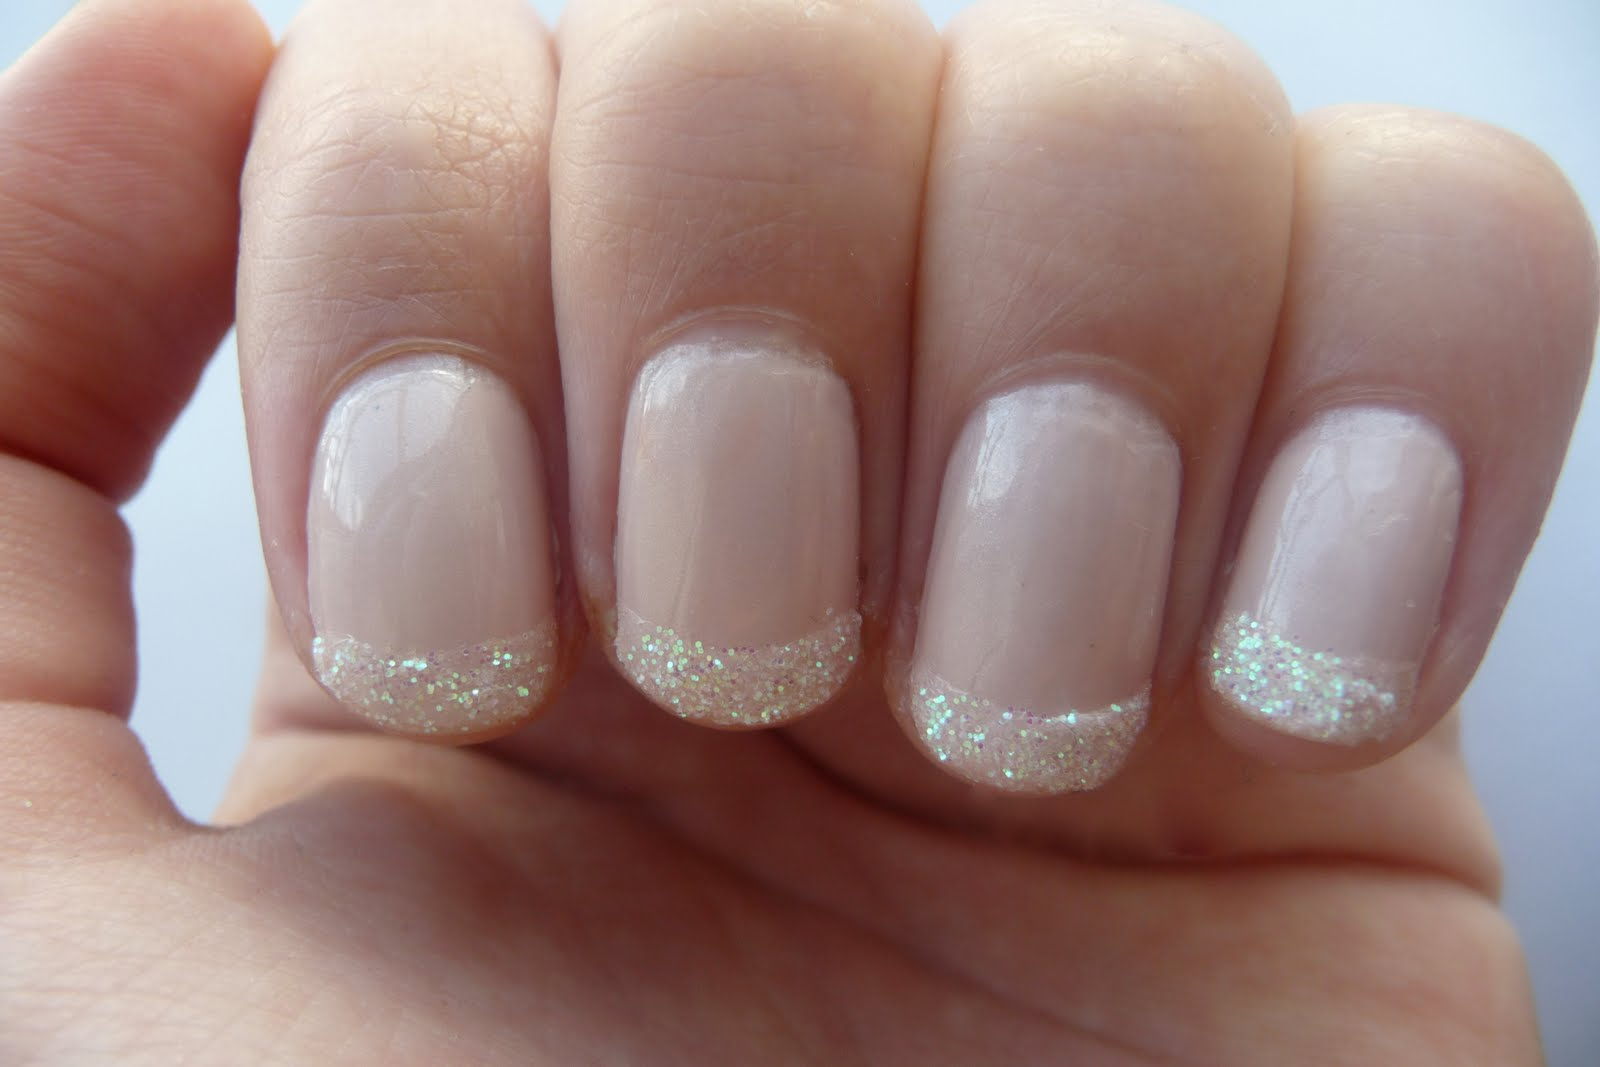 French Tip Nail Designs With Glitter | 2017 - 2018 Best ...